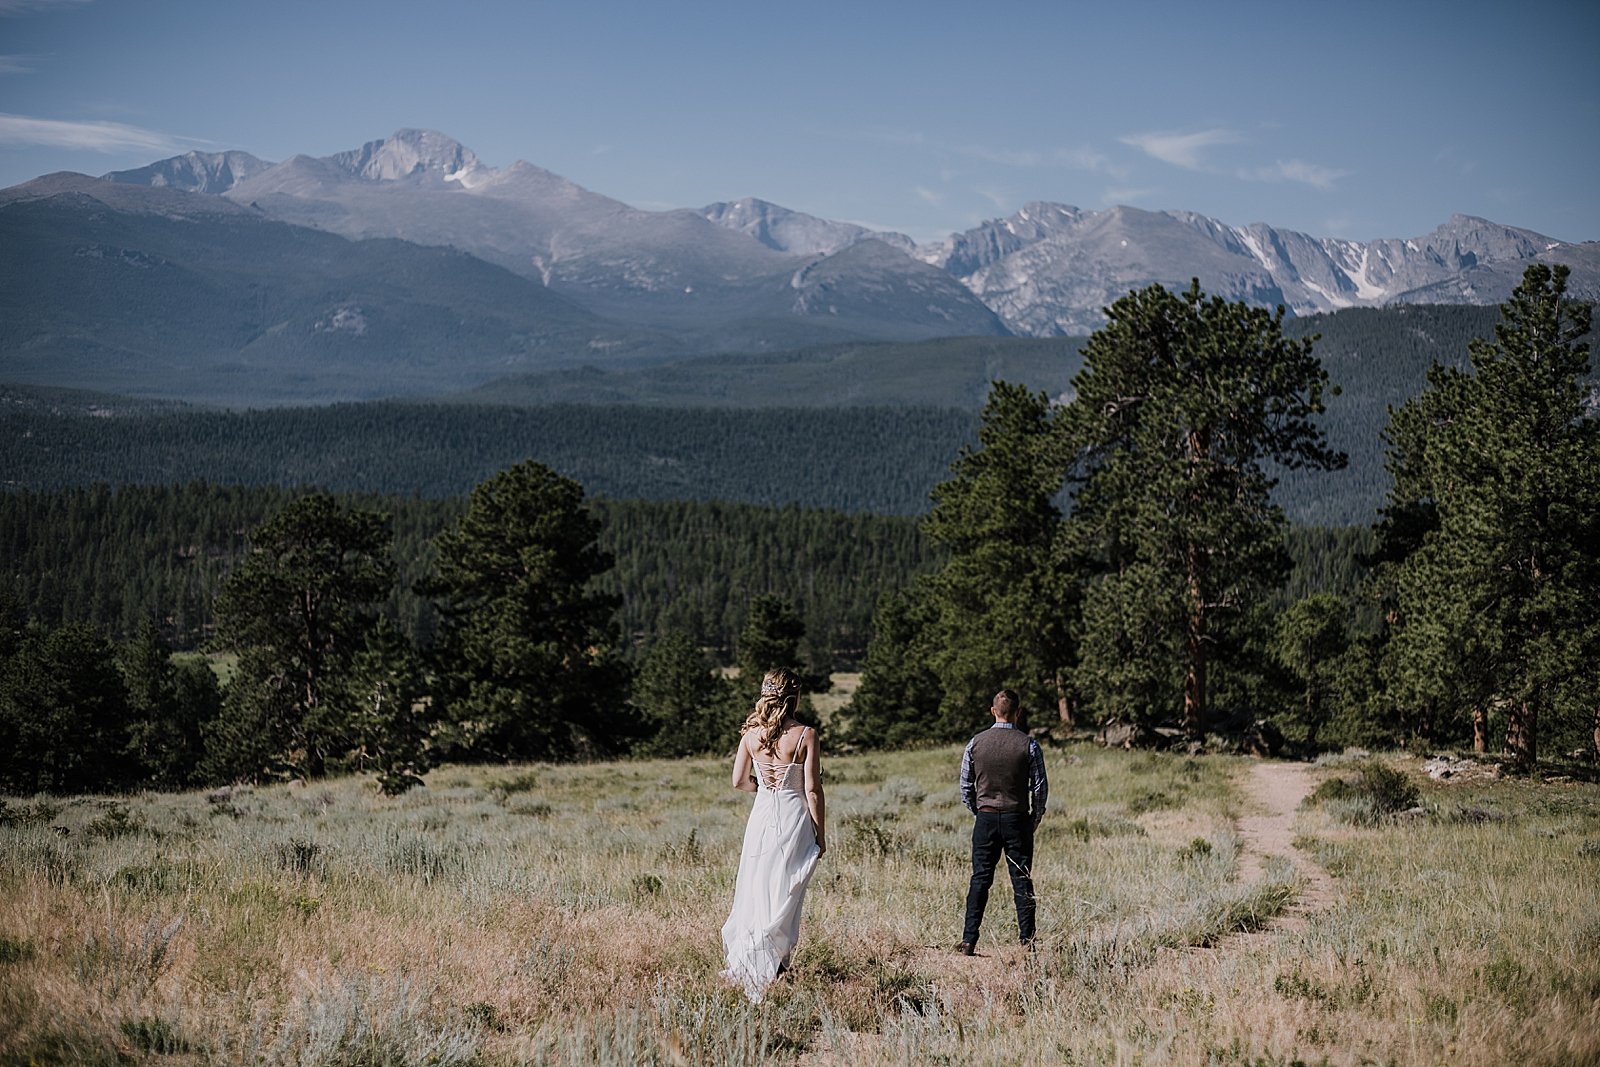 wedding couple first look, rocky mountain national park elopement, 3M curves elopement, self solemnizing, self solemnization, long's peak ceremony, hiking elopement, estes park elopement